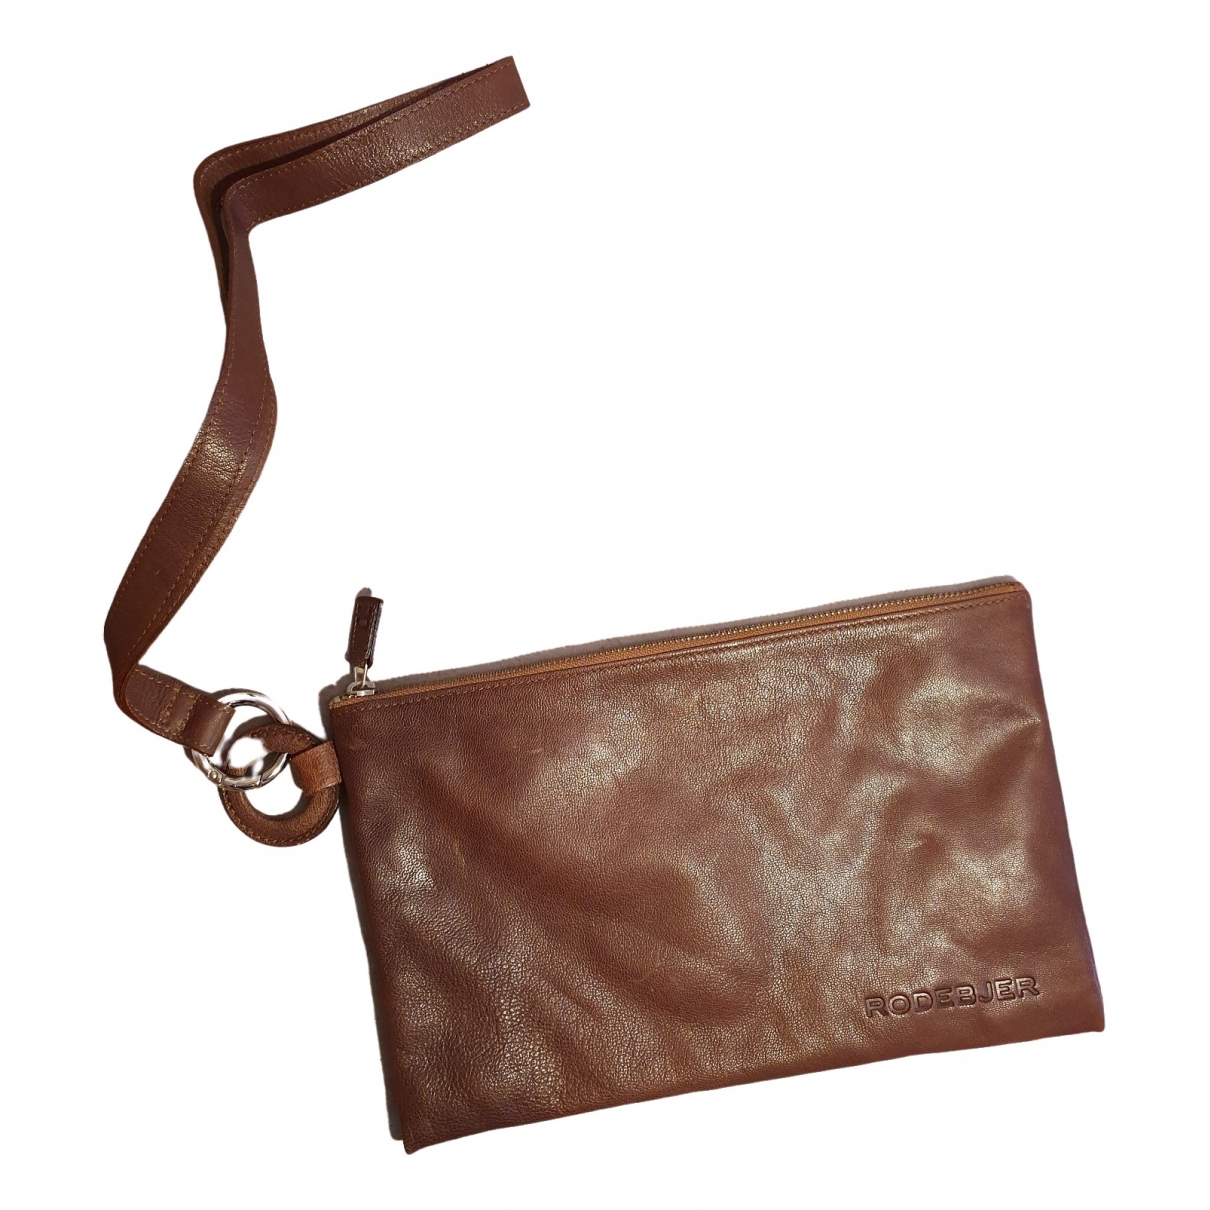 Rodebjer \N Brown Leather Clutch bag for Women \N